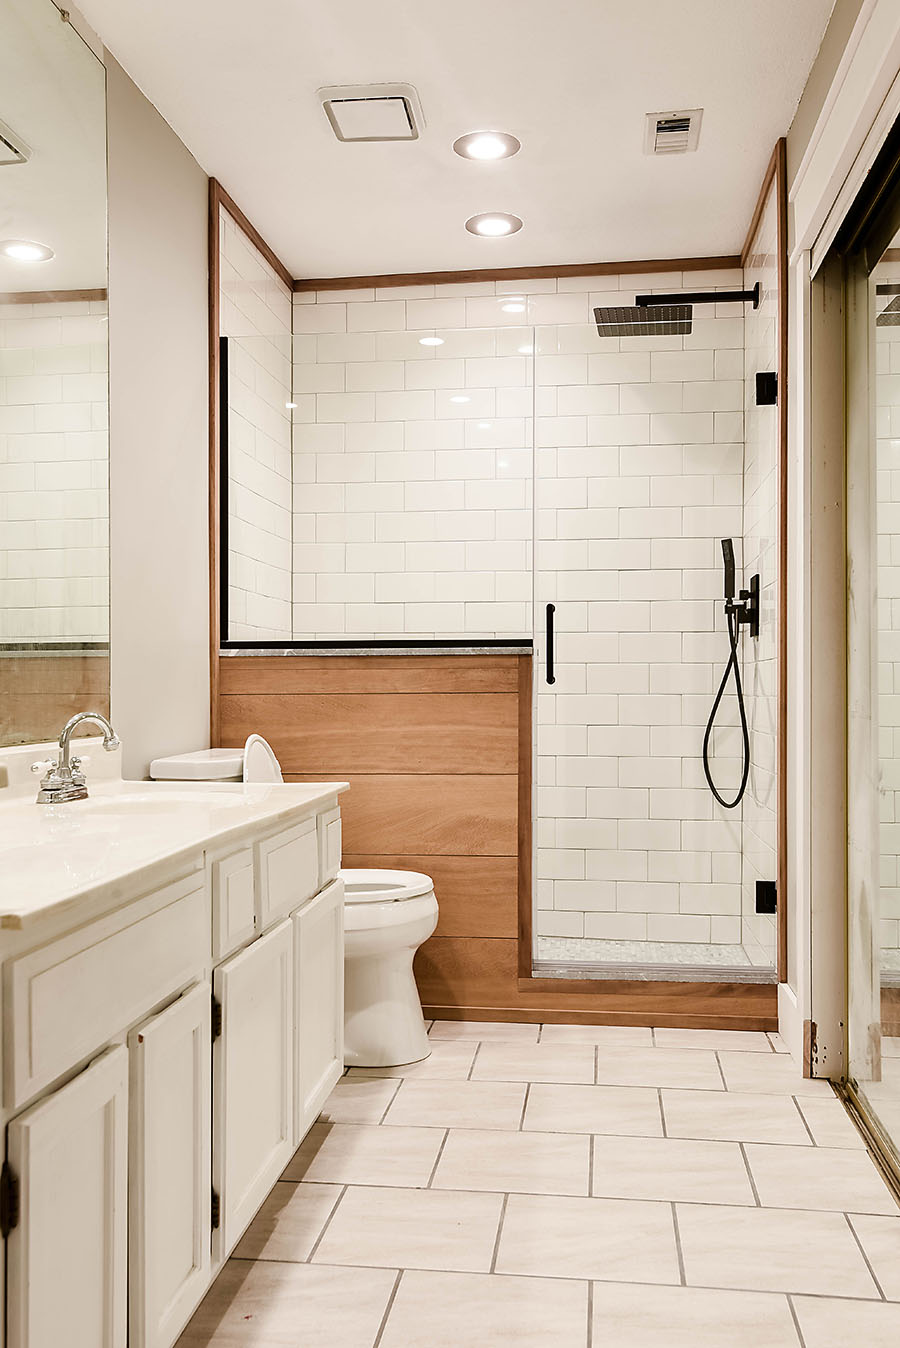 Master Bathroom Renovation Converting A Bathtub Into A